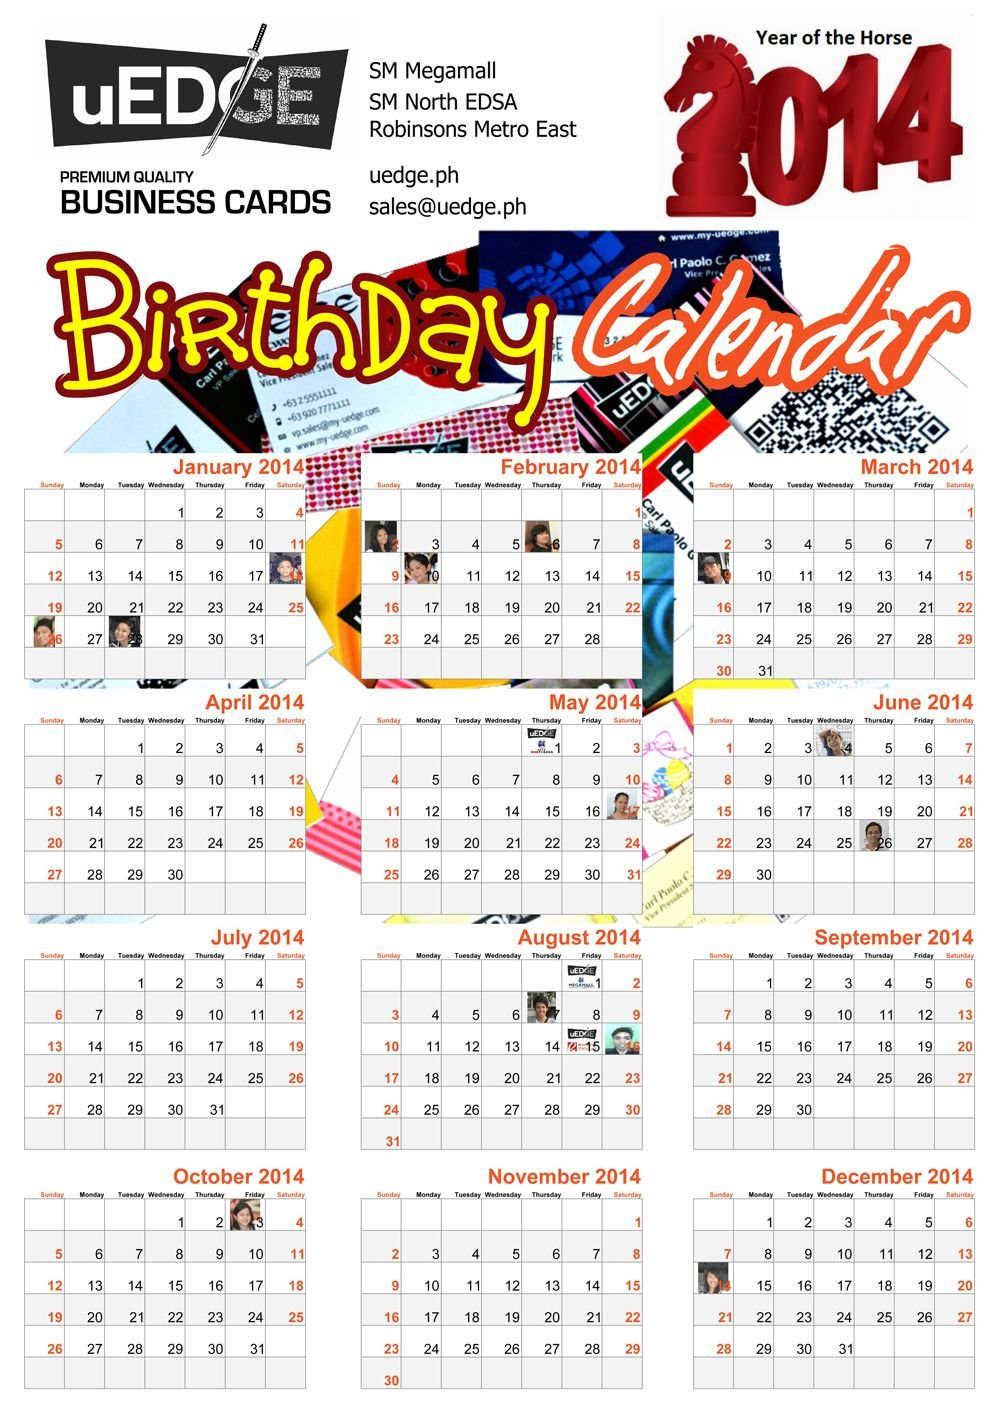 Introducing Our Newest Product: 2014 Calendars W Birthday Calendars That We Can Fill In